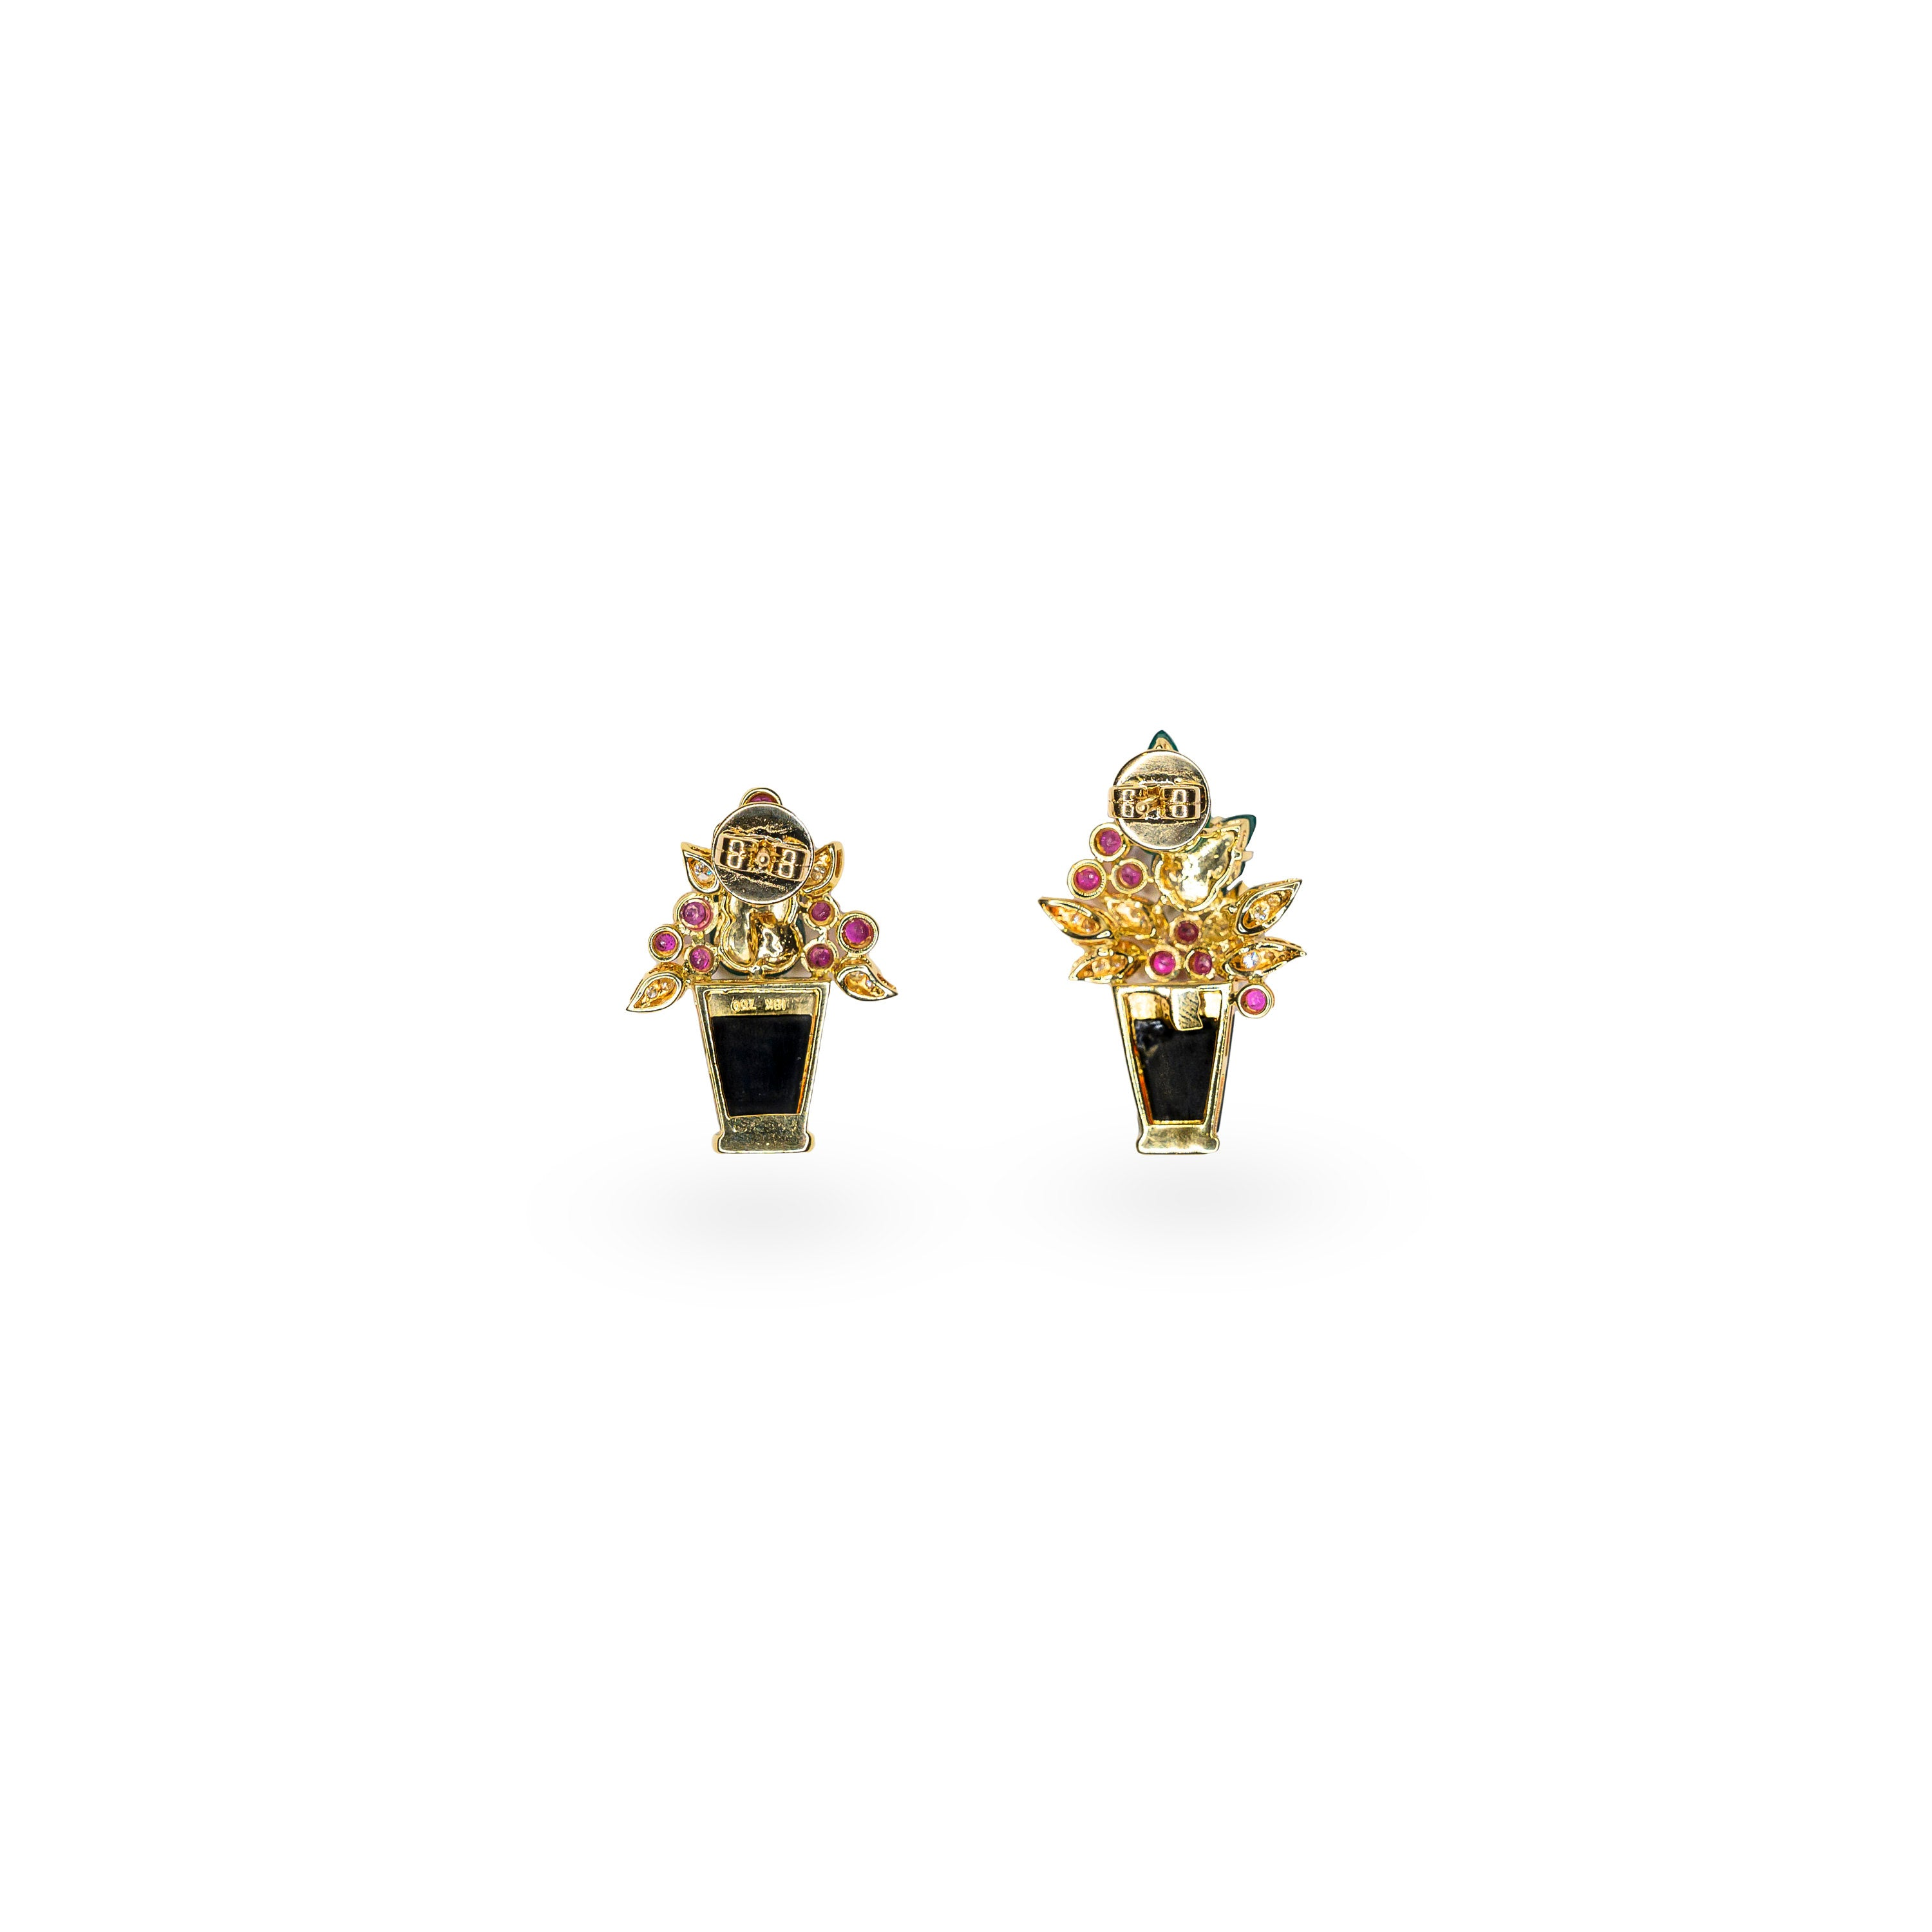 18K Yellow Gold, Green Jade, Diamonds & Rubies Earrings